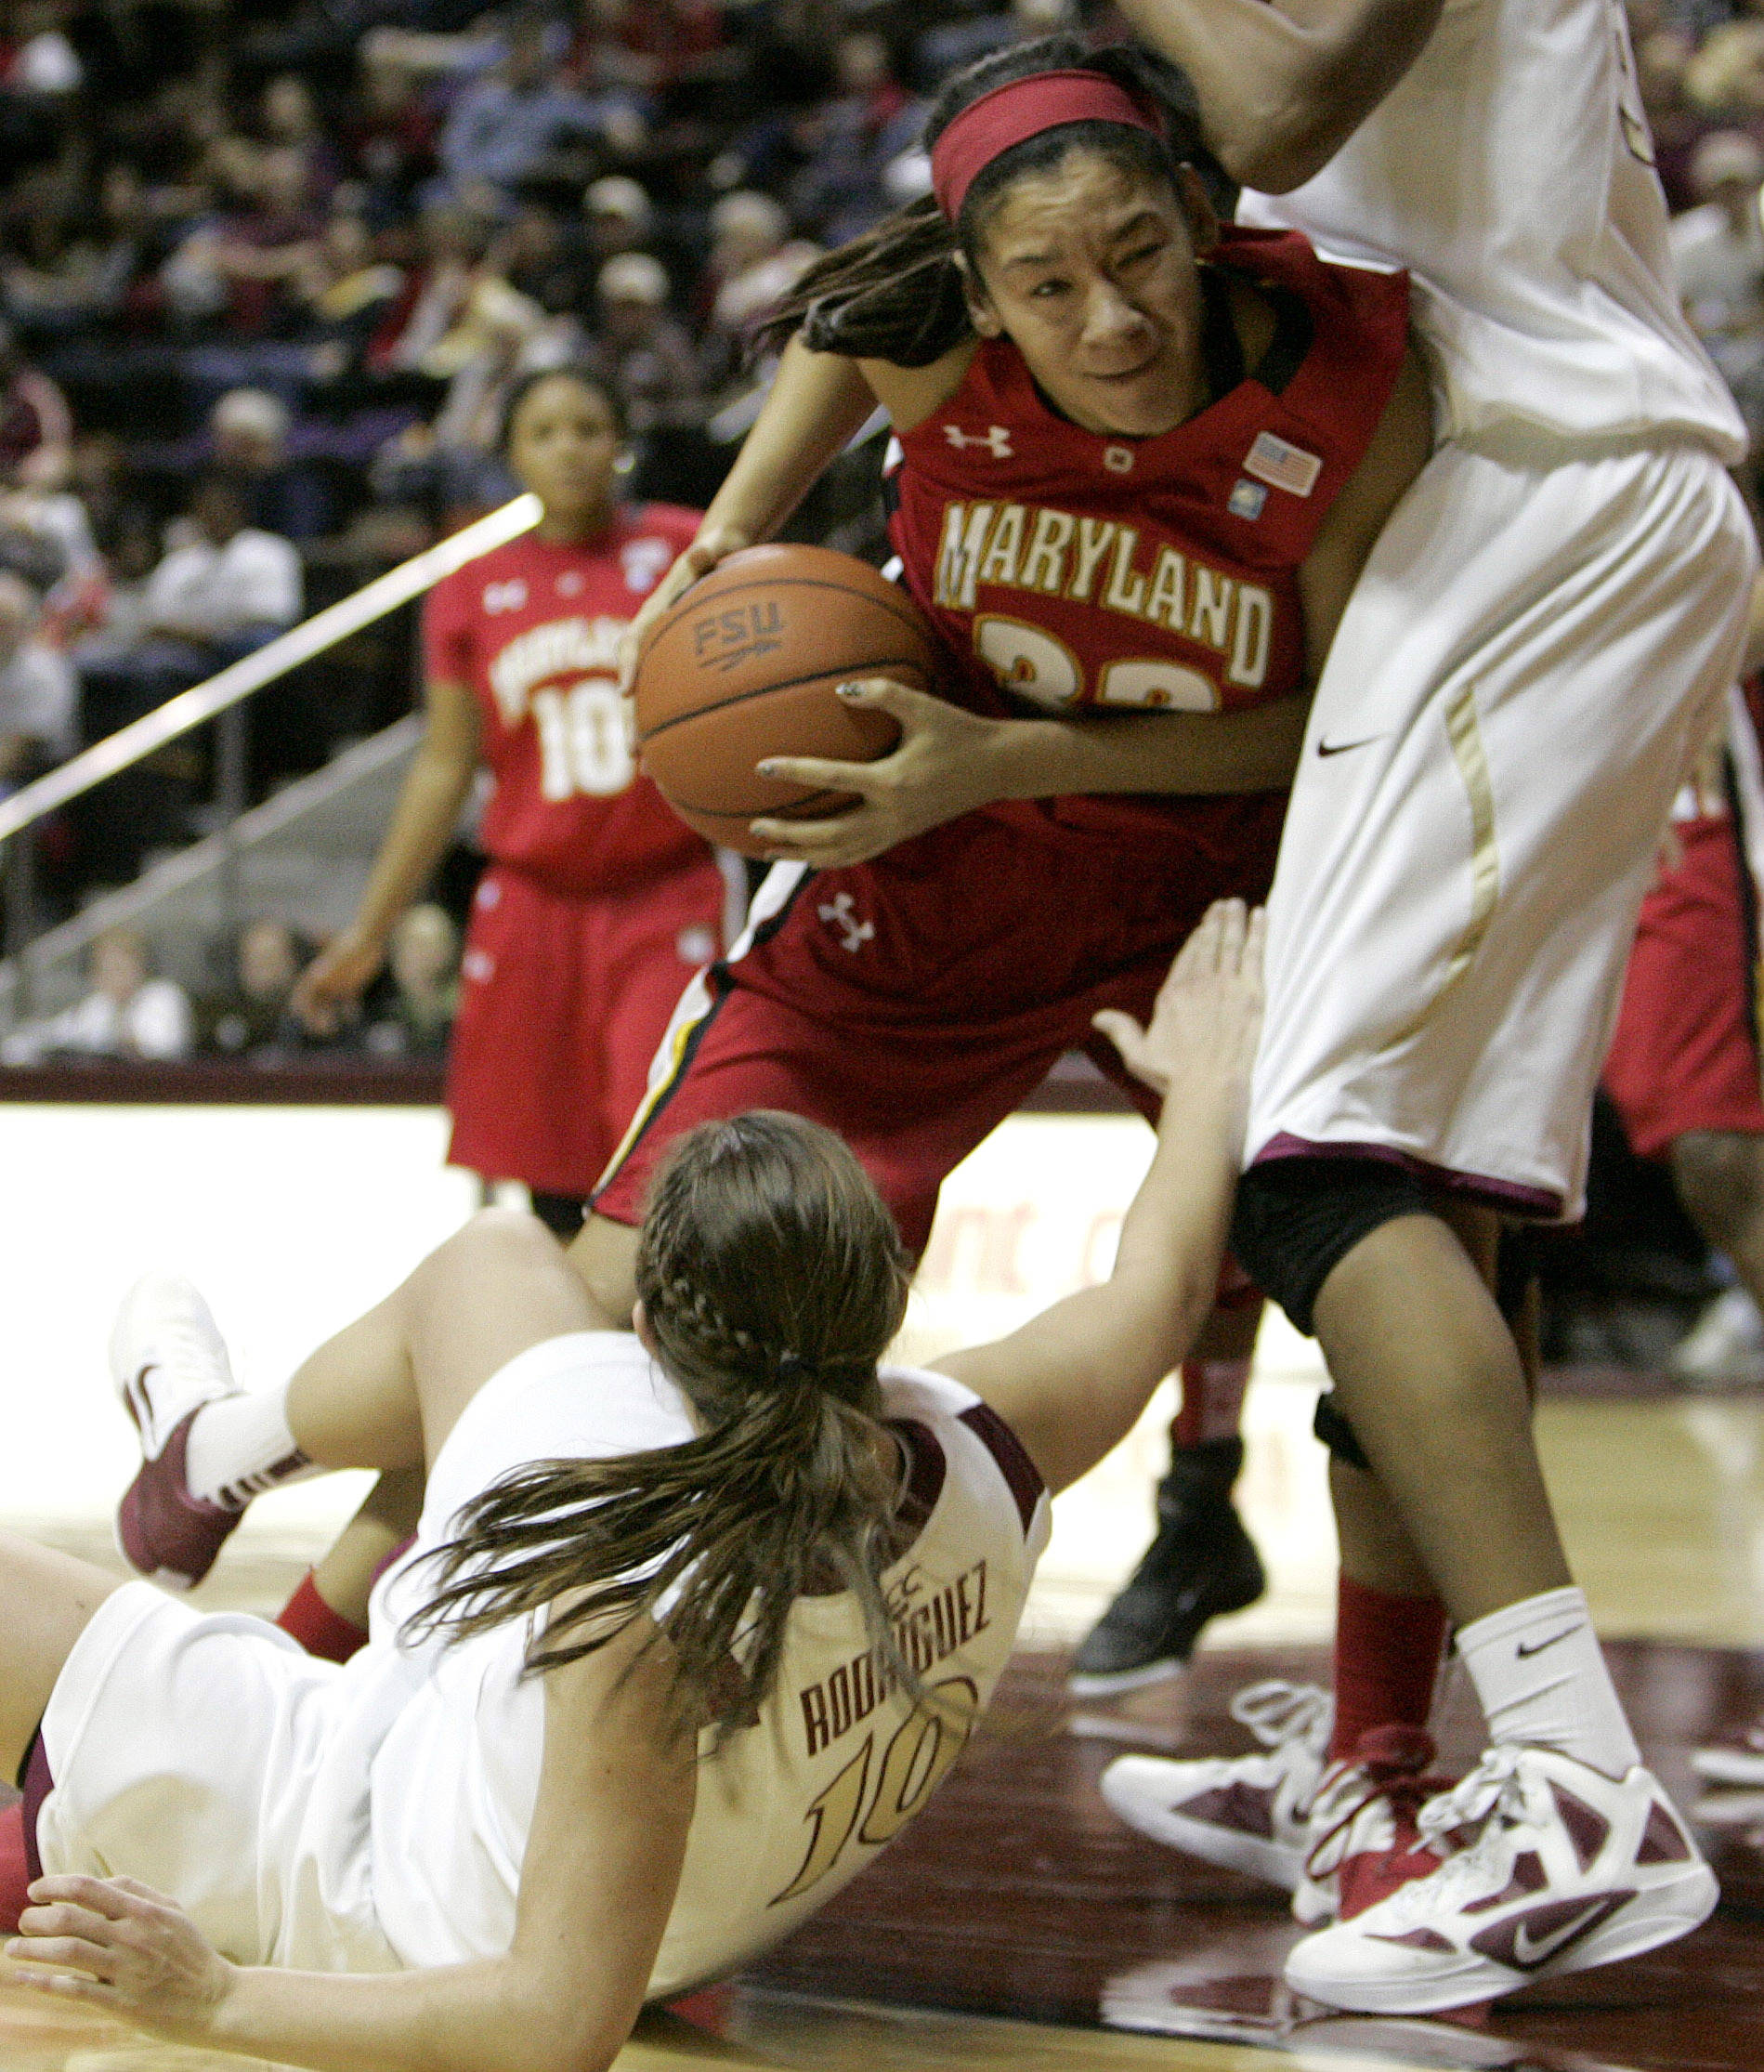 Maryland's Whitney Bays, center, drives against Florida State's Leonor Rodriguez, bottom, and Chelsea Davis, right, in the second half of an NCAA college basketball game on Monday, Jan. 2, 2012, in Tallahassee, Fla. Maryland won 91-70. (AP Photo/Steve Cannon)